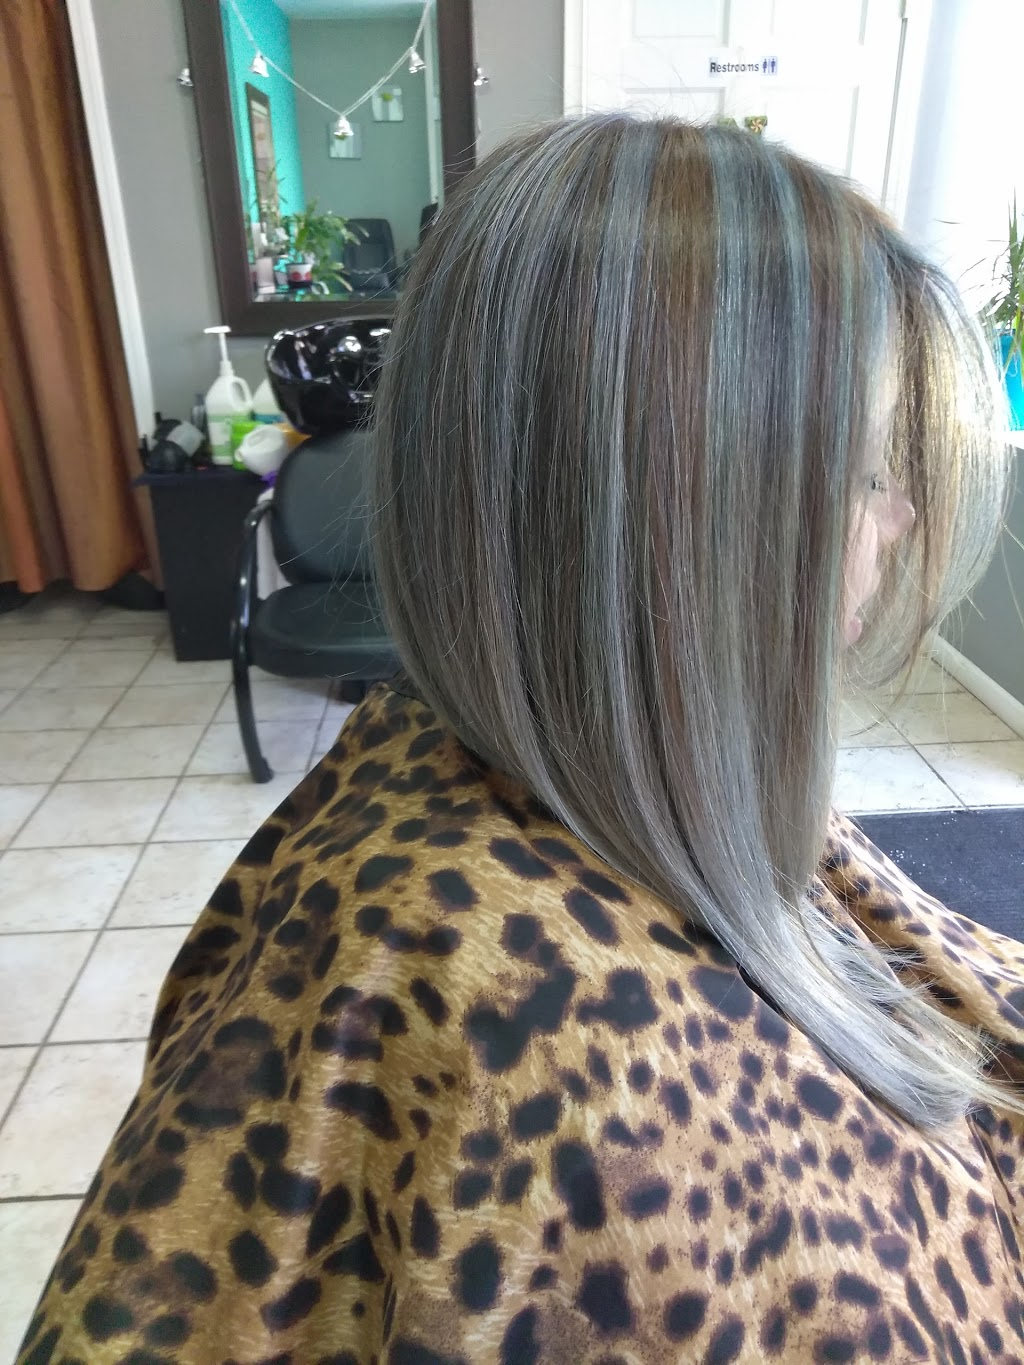 Emerge beauty by Enrique - hair care  | Photo 9 of 10 | Address: 1401 S 49th Ct, Cicero, IL 60804, USA | Phone: (773) 557-3525